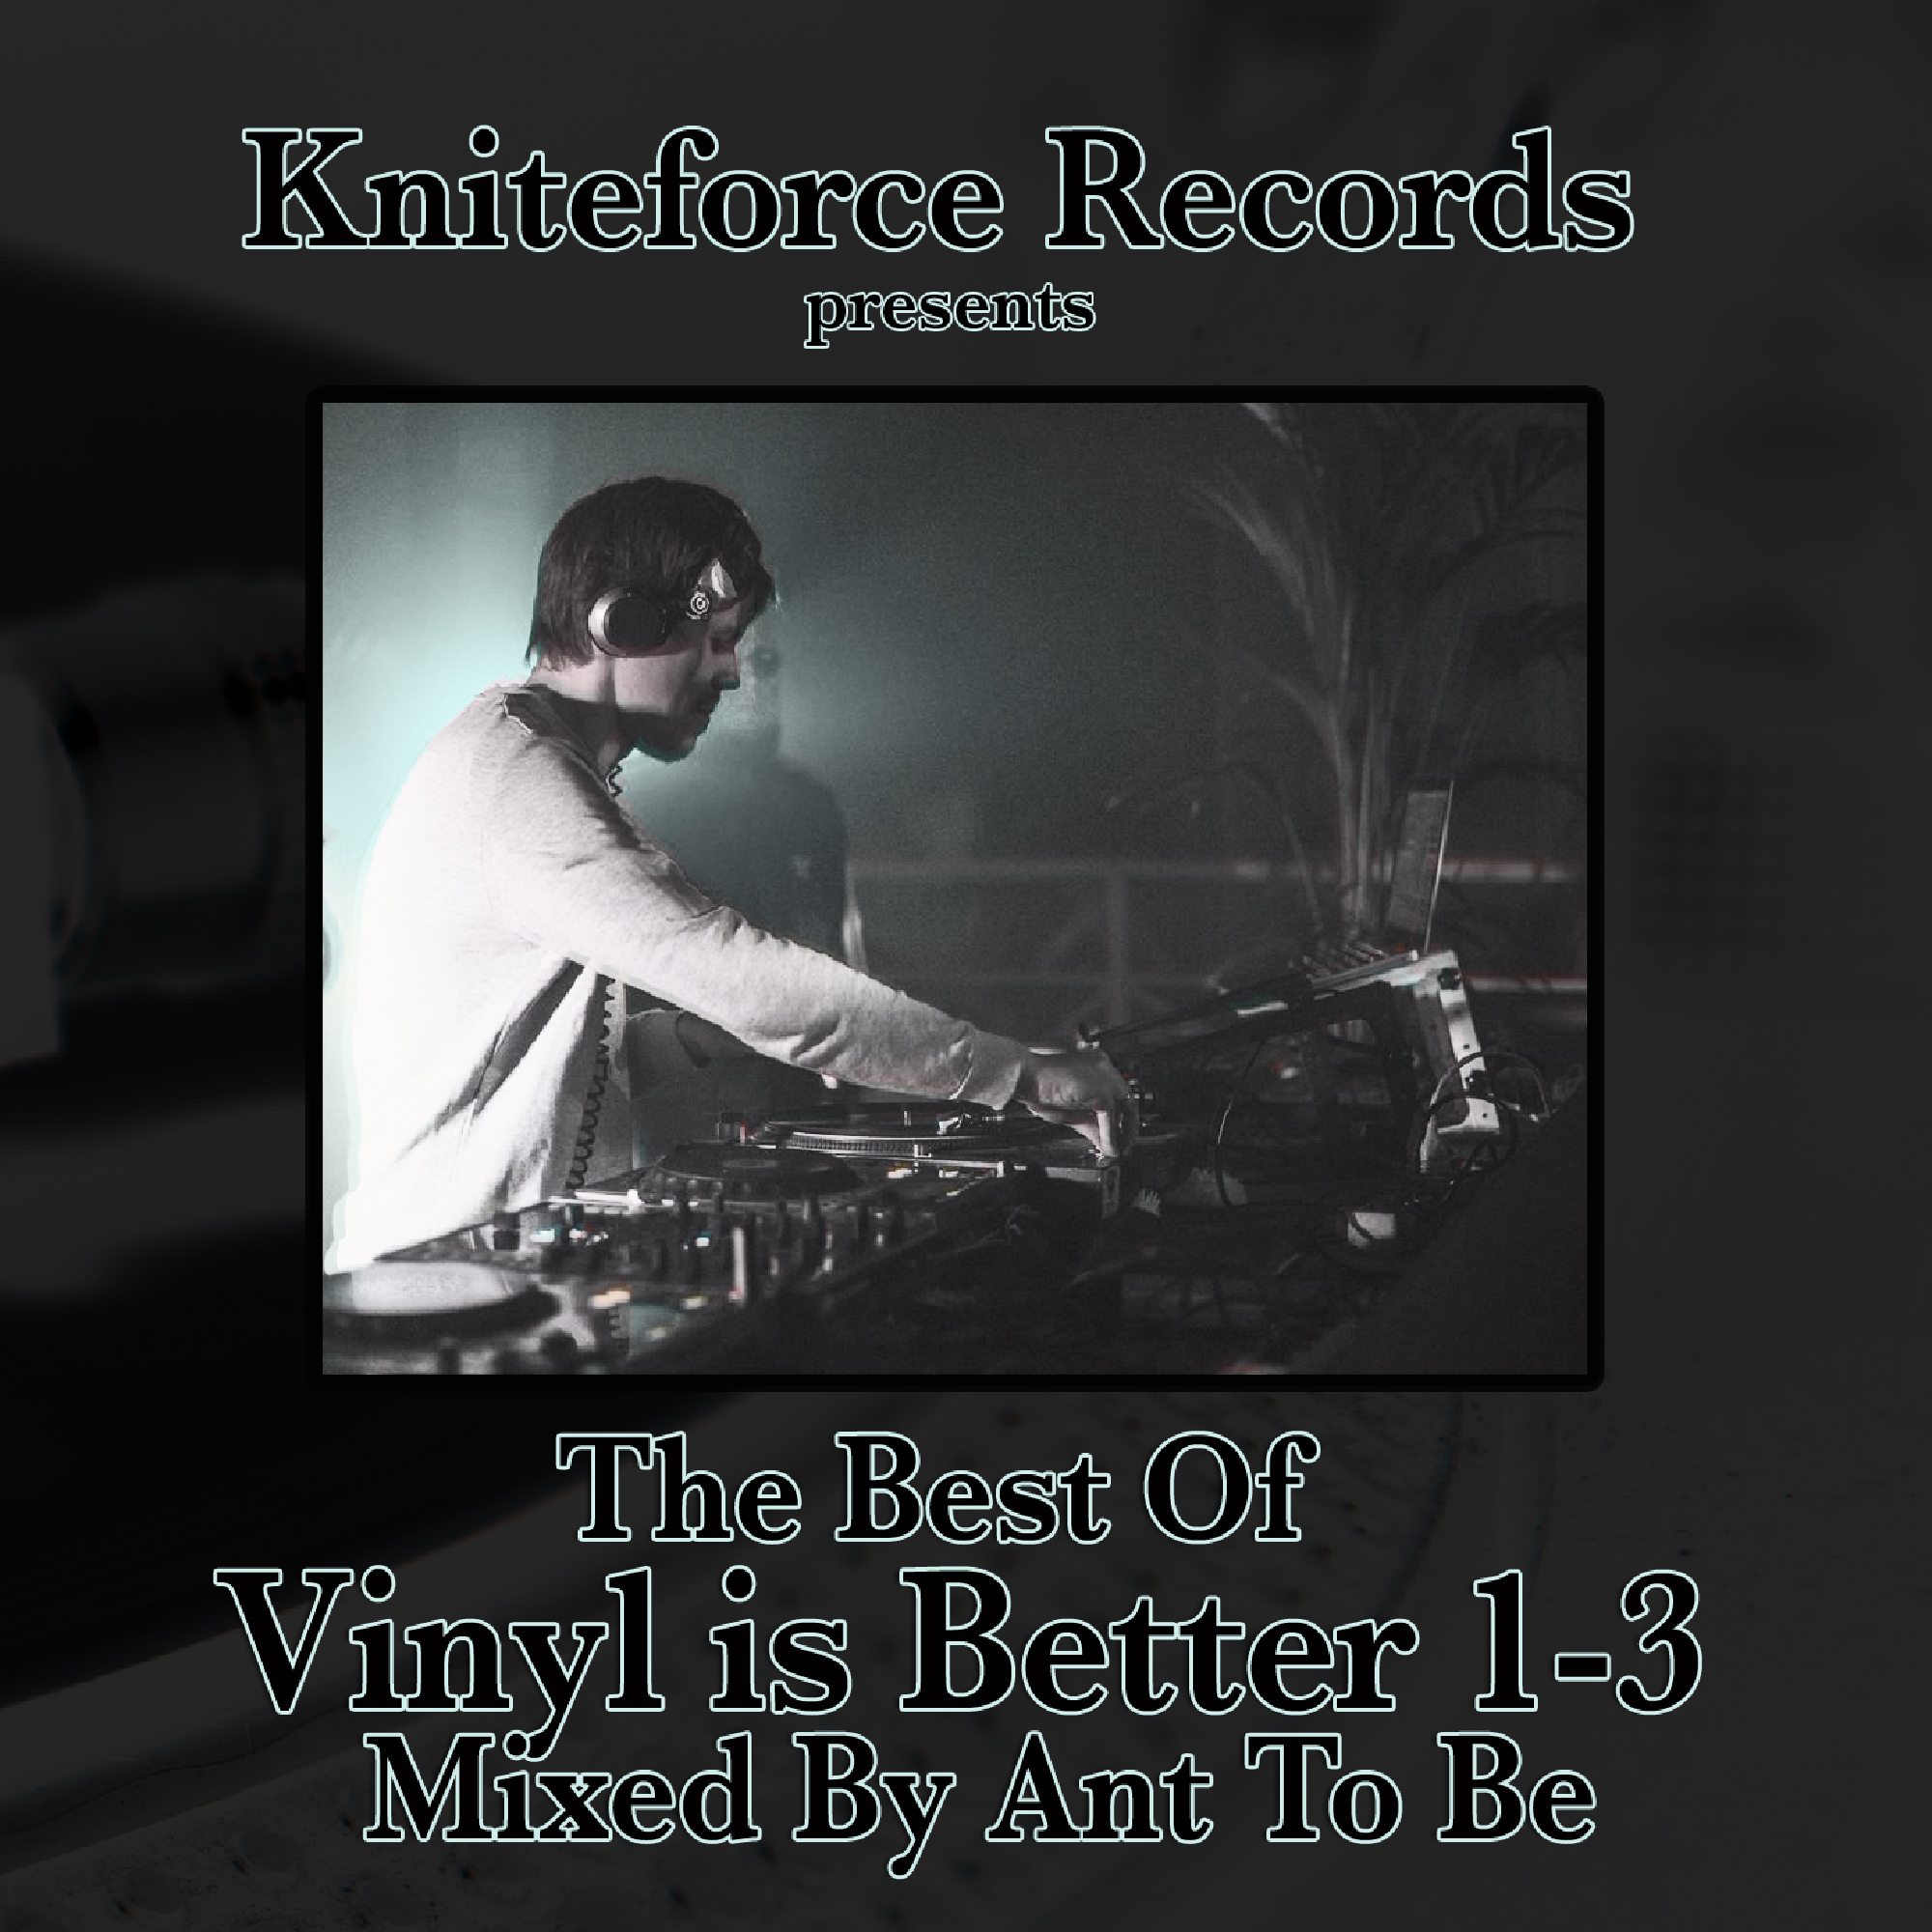 [KFCD011] Various - The Best of Vinyl Is Better Vol. 1-3 (Mixed By Ant To Be) (Digital Only)